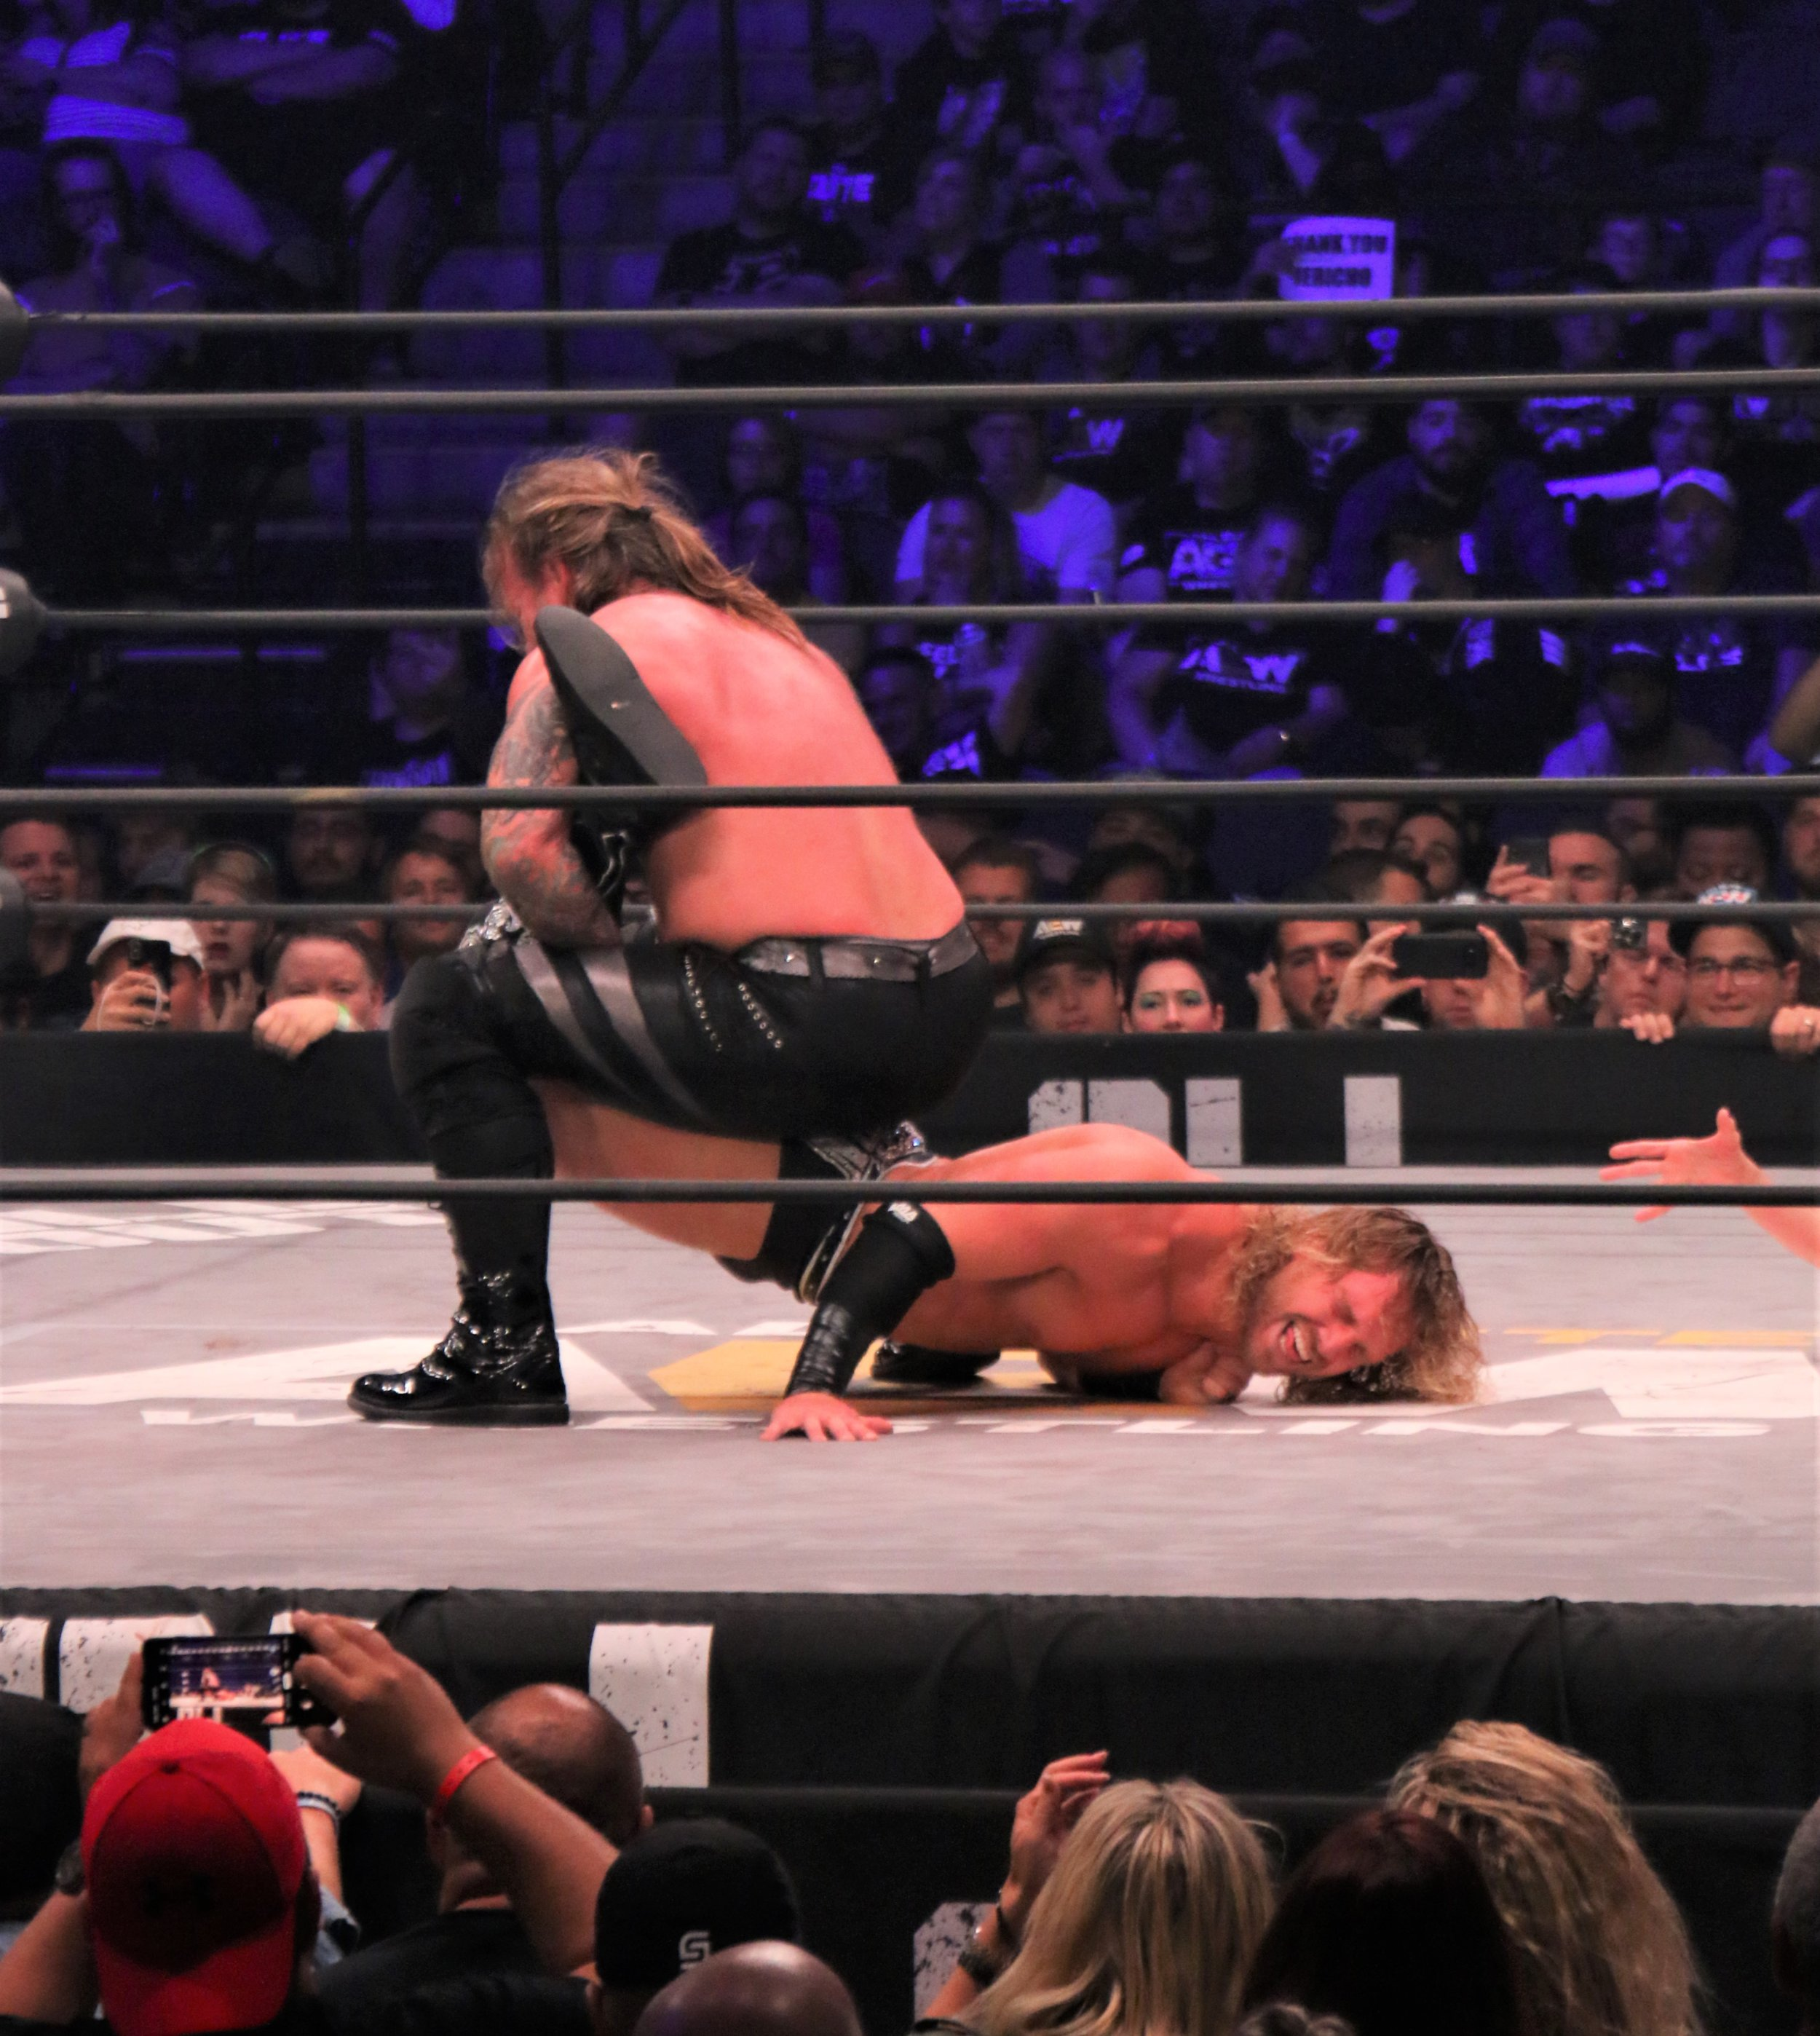 Chris Jericho puts Hangman Page in the Walls of Jericho.